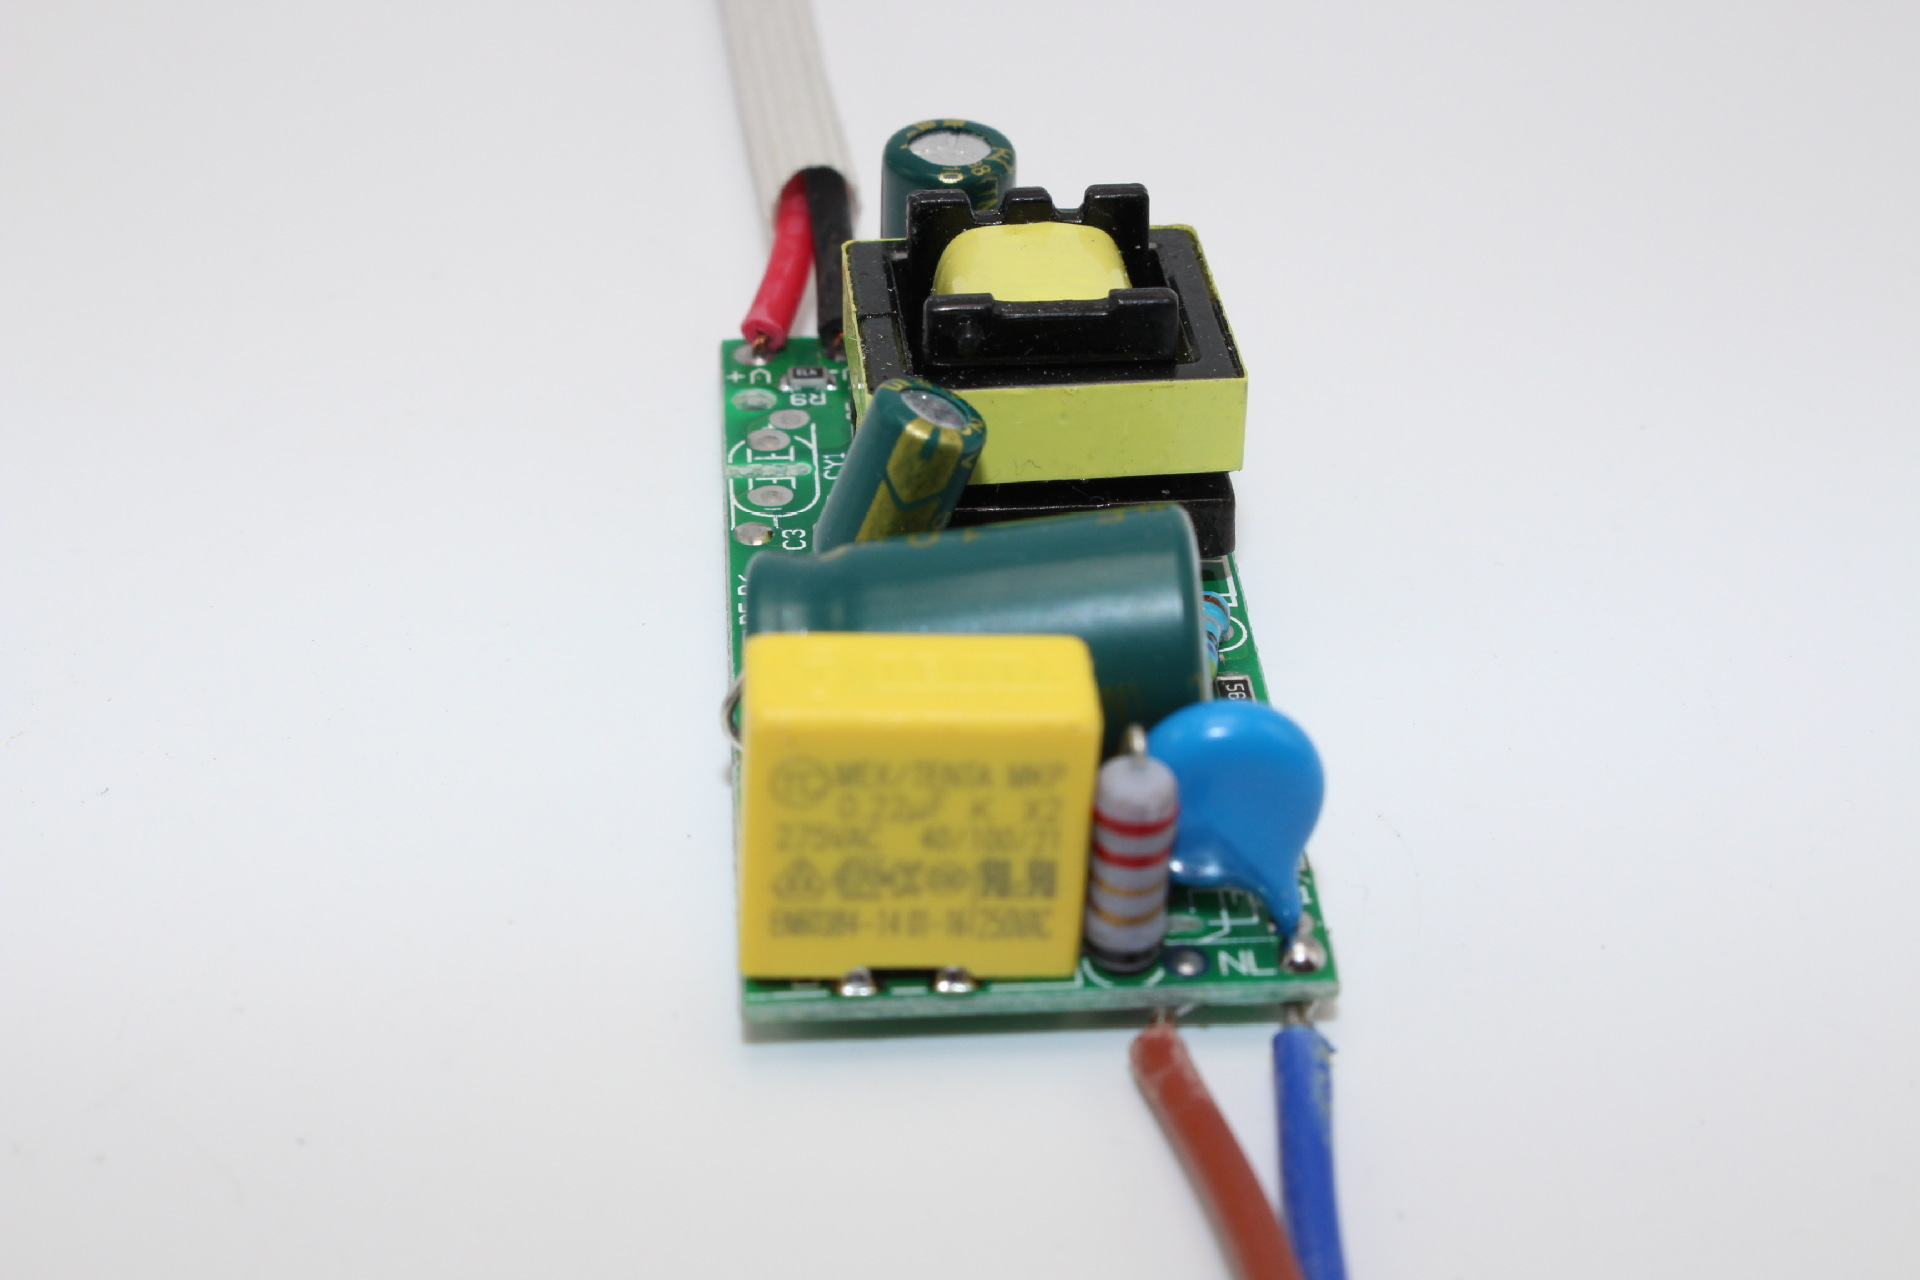 8-12W 20W 16-24W 600mA LED Constant Current Driver AC85-265V Input Isolated Power Adapter